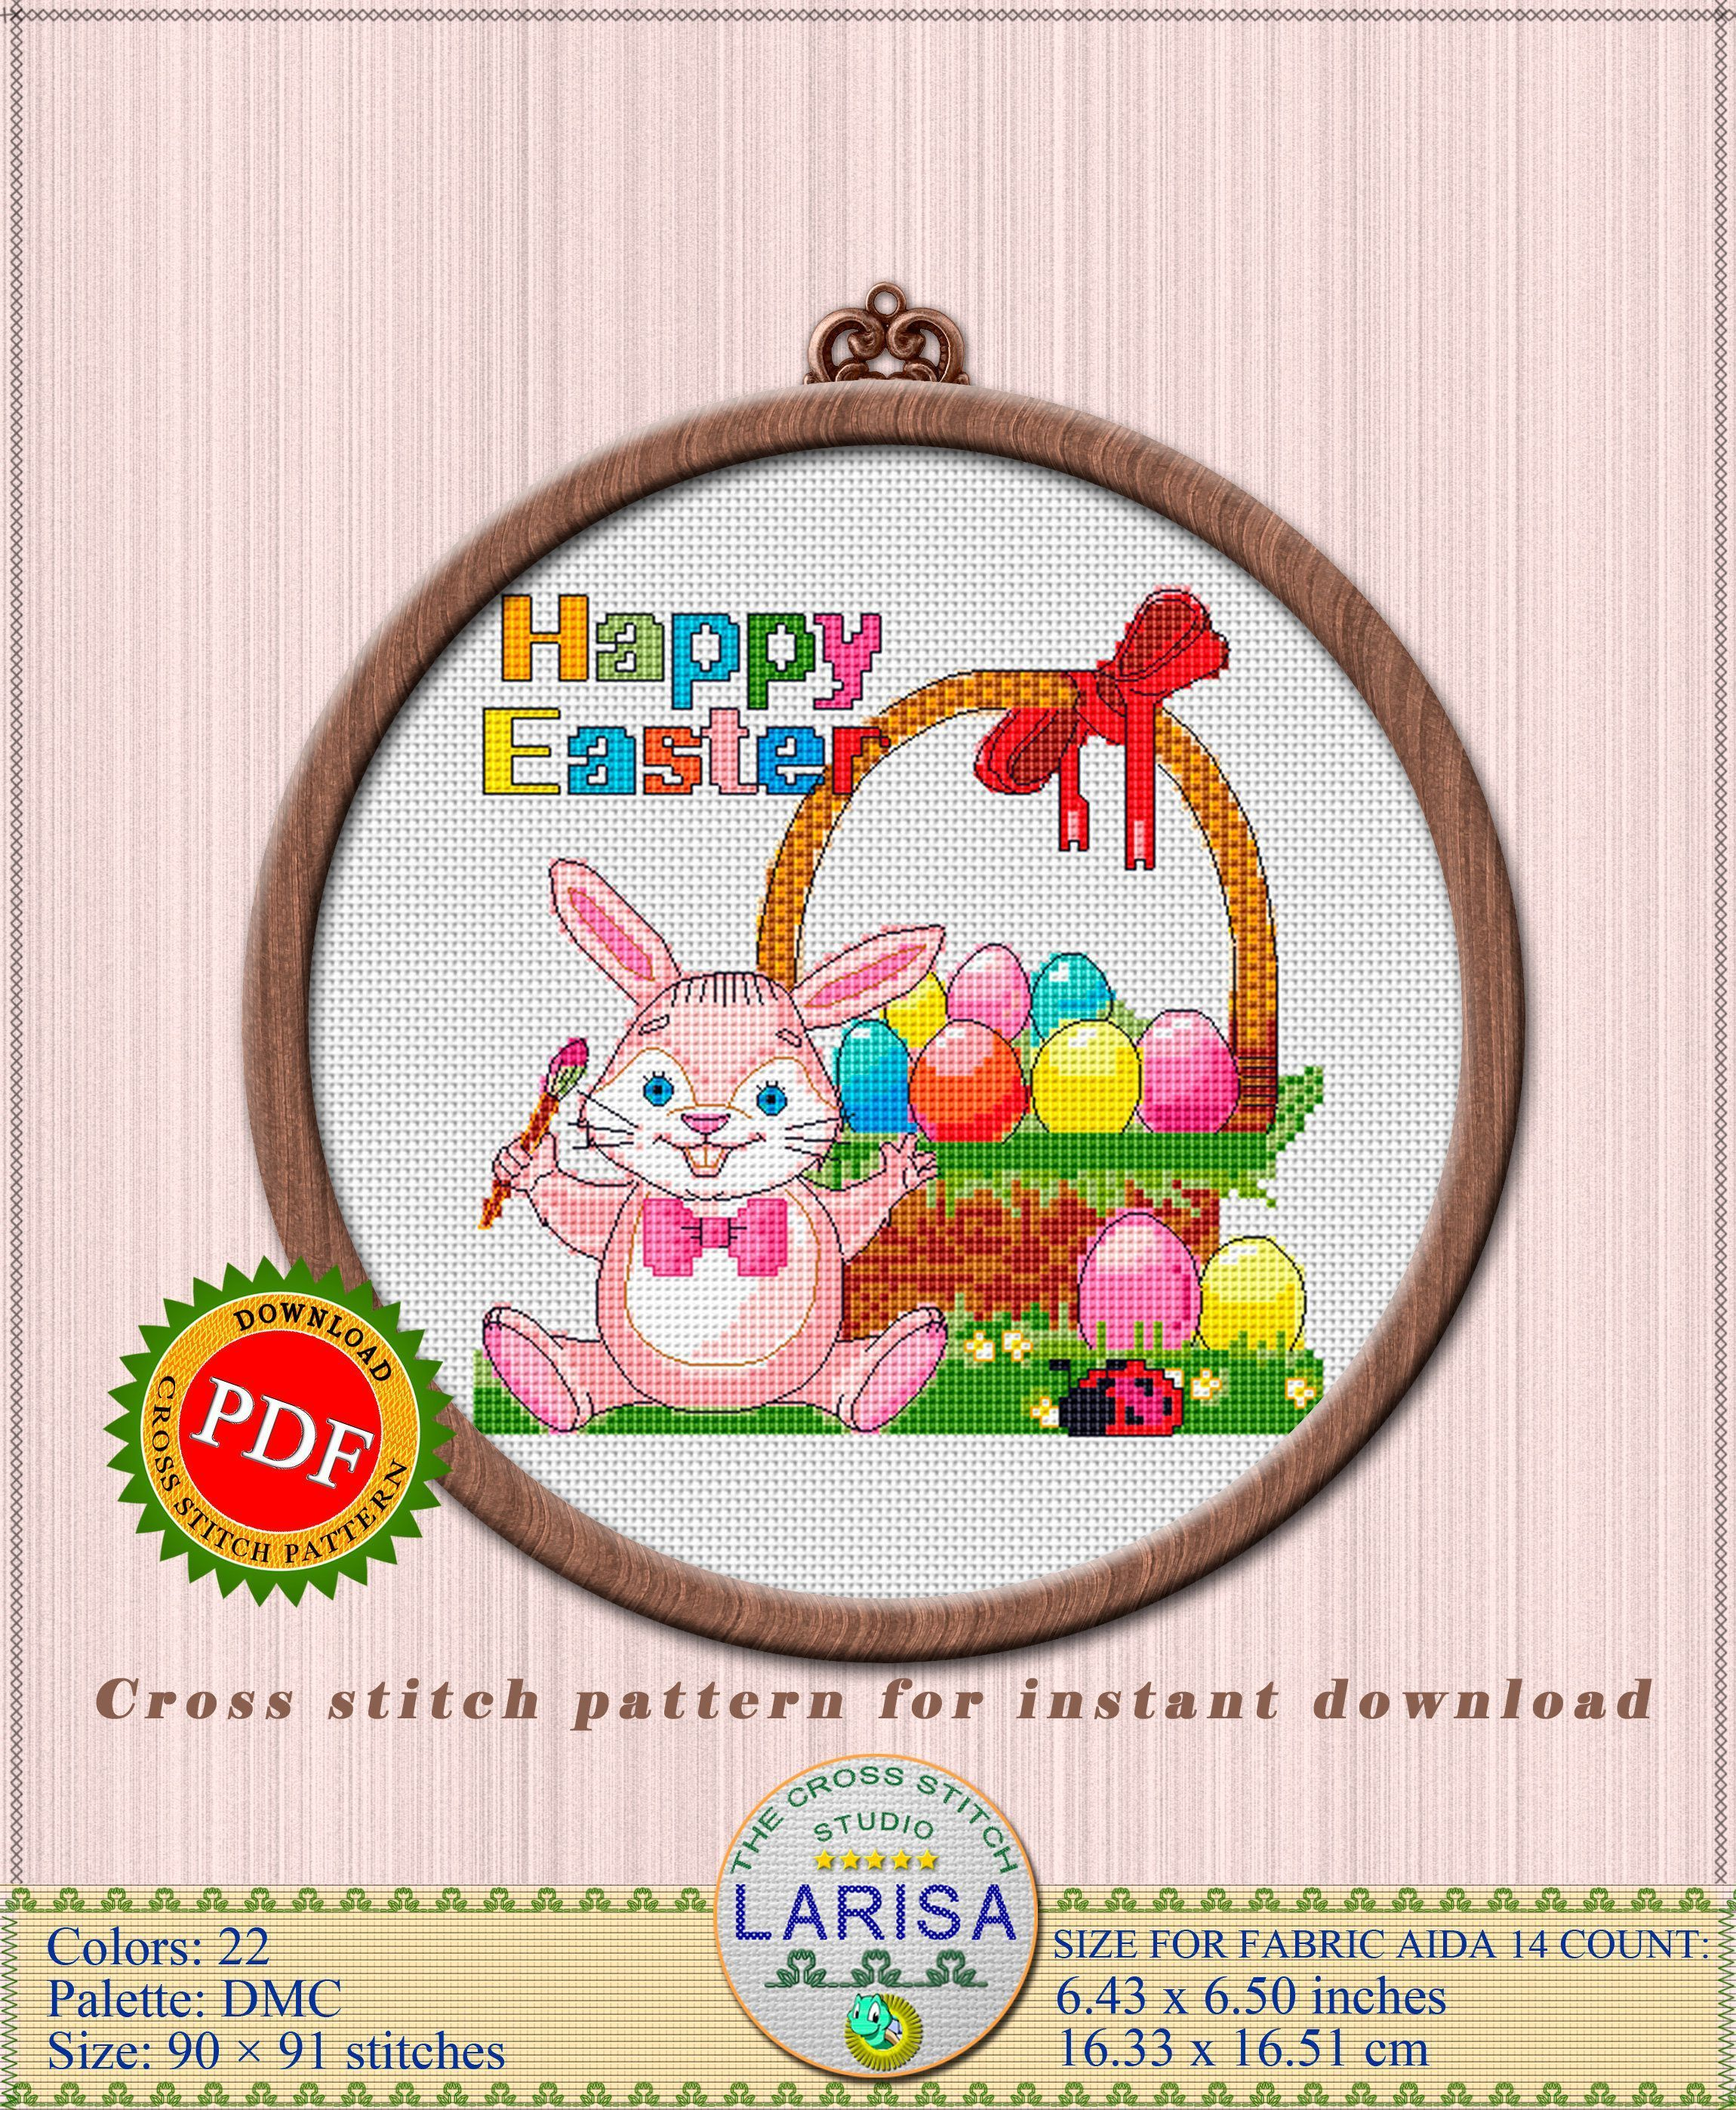 Watercolor Easter Brunch Family Tradition Paper Plate | Zazzle.comWatercolor Easter Brunch Family Tradition Paper Plate  happy  easter  brunch  egg  easter -=Happy Easter=- Updated cross stitch patternHappy Easter cross stitch pattern by LarisaStitch on EtsyHappy Easter SundayHappy Easter SundayWatercolor Easter Brunch Family Tradition Paper Plate | Zazzle.com Watercolor Easter Brunch Family Tradition Paper Plate  happy  easter  brunch  egg  easter -=Happy Ea... #bunny #easter #funny #happy #hap